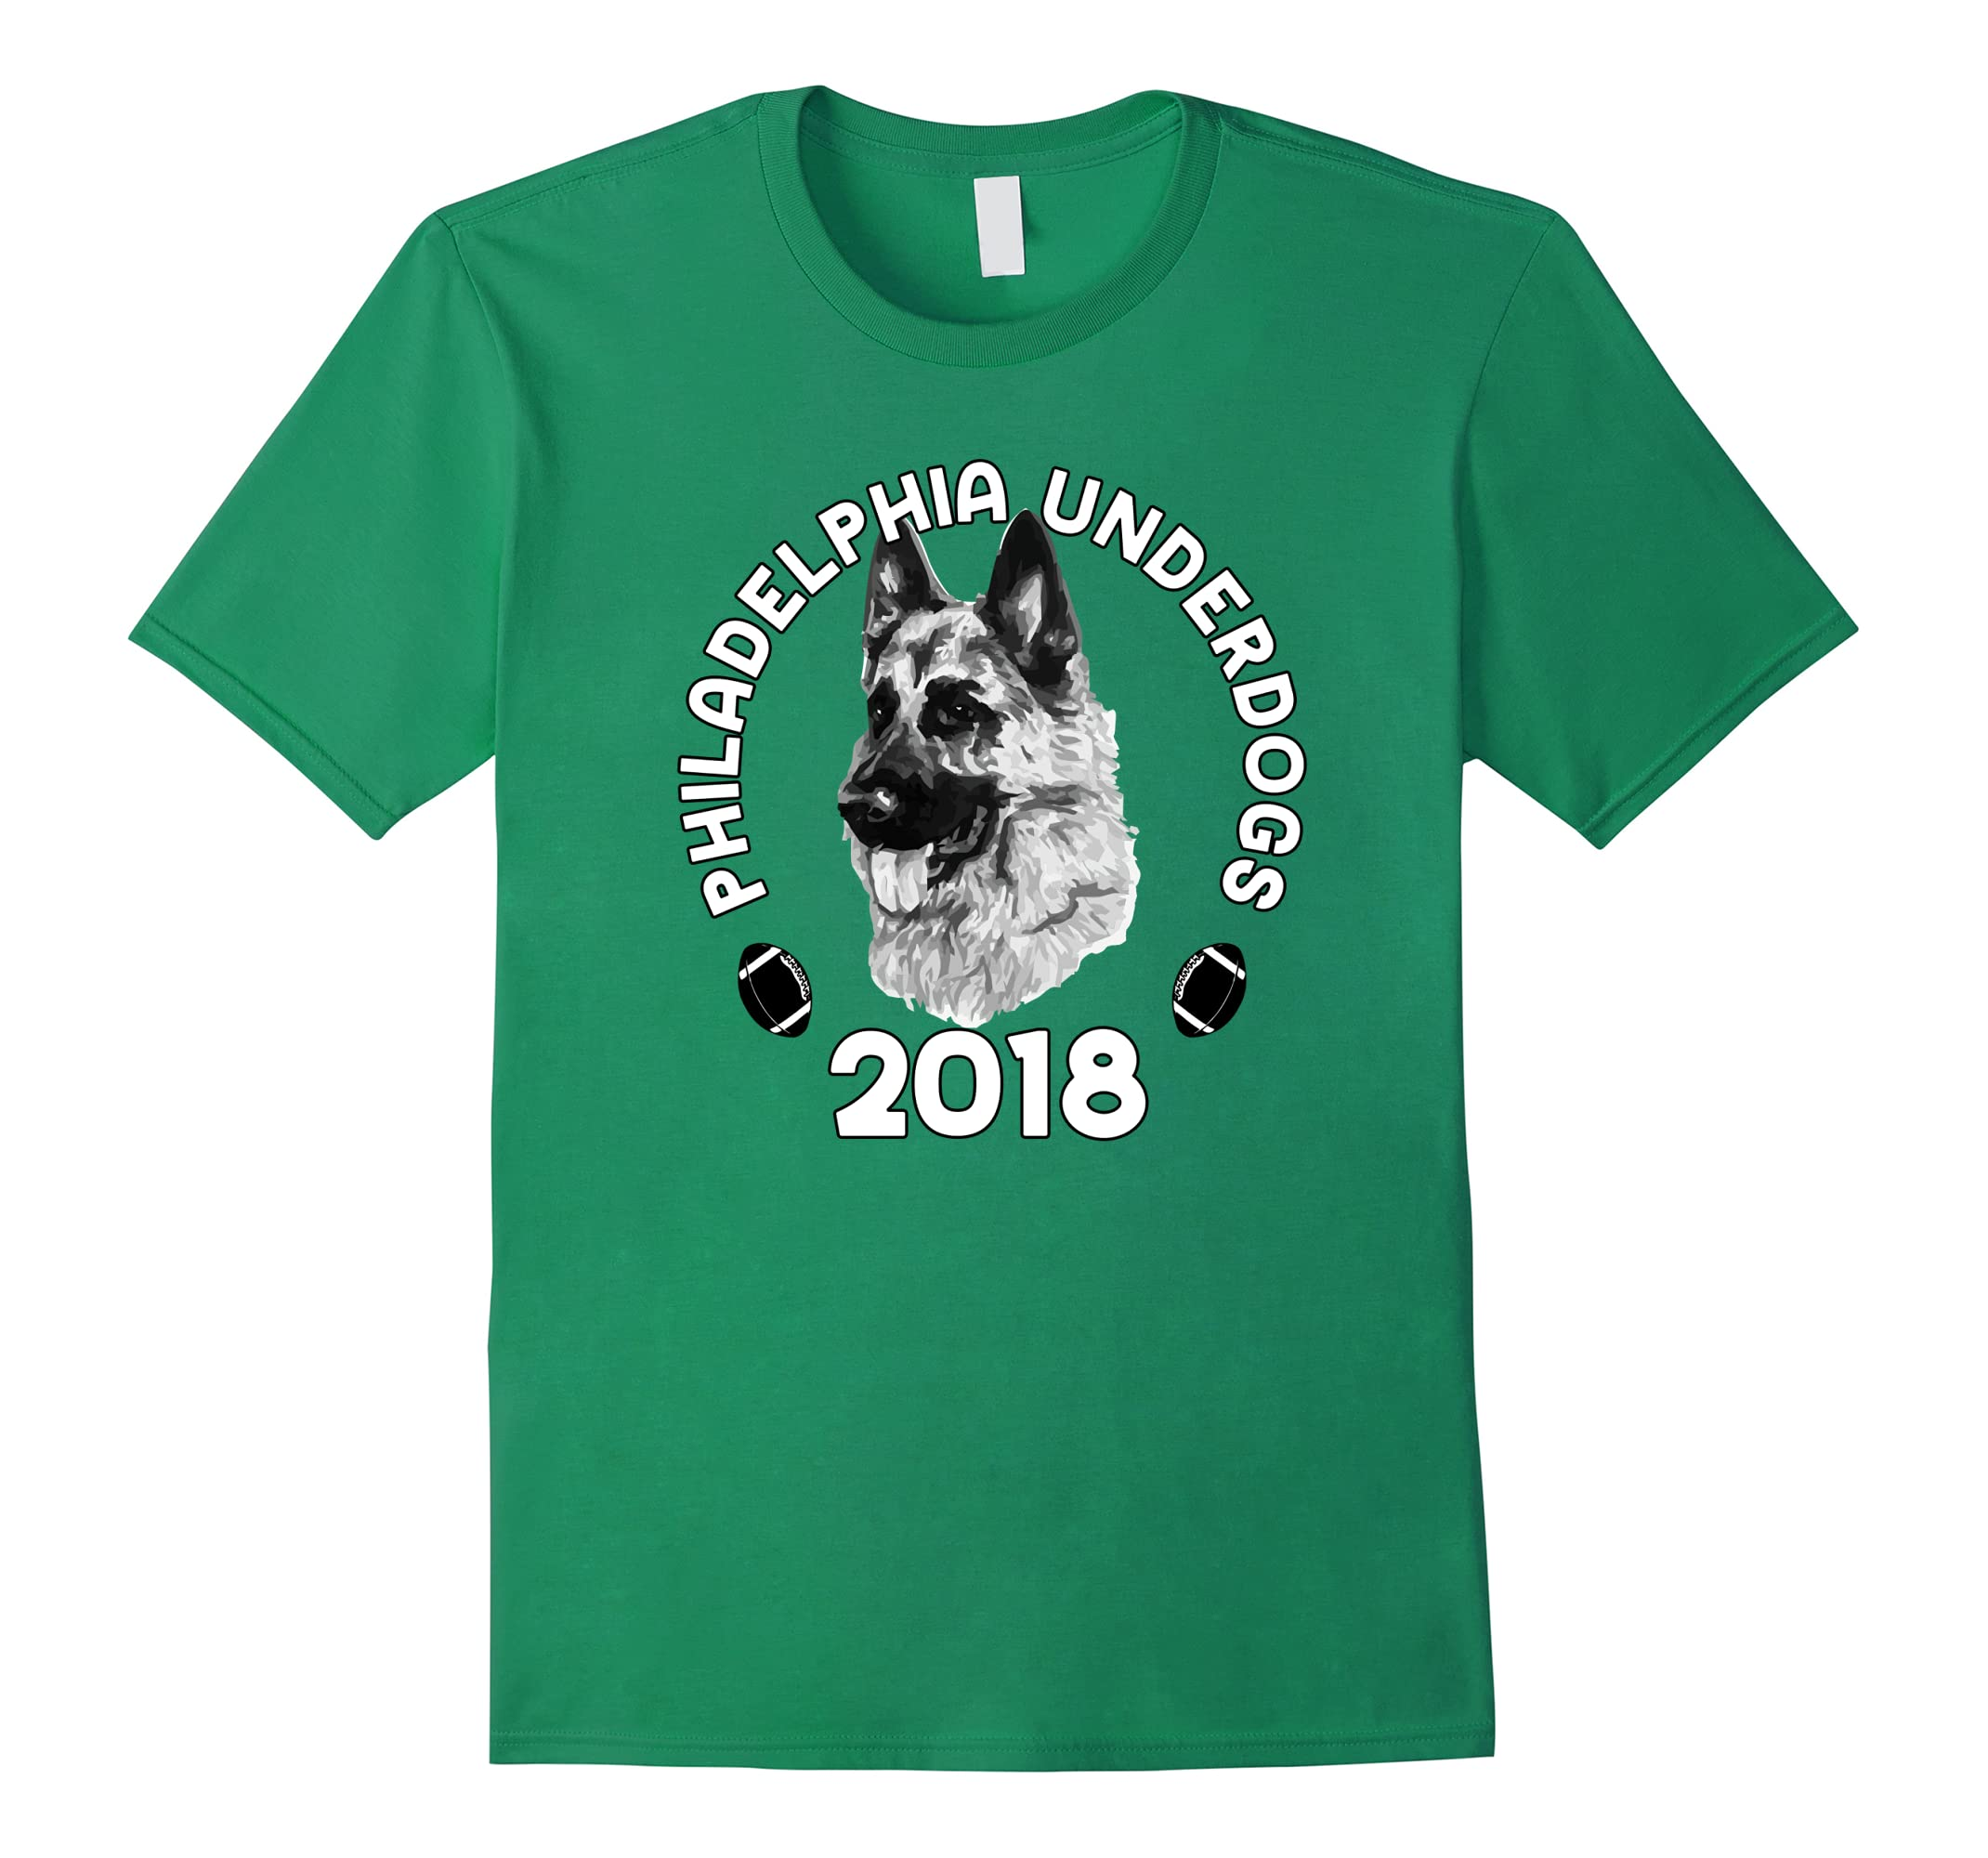 Philadelphia Underdogs 2018 Funny T-Shirt-ah my shirt one gift